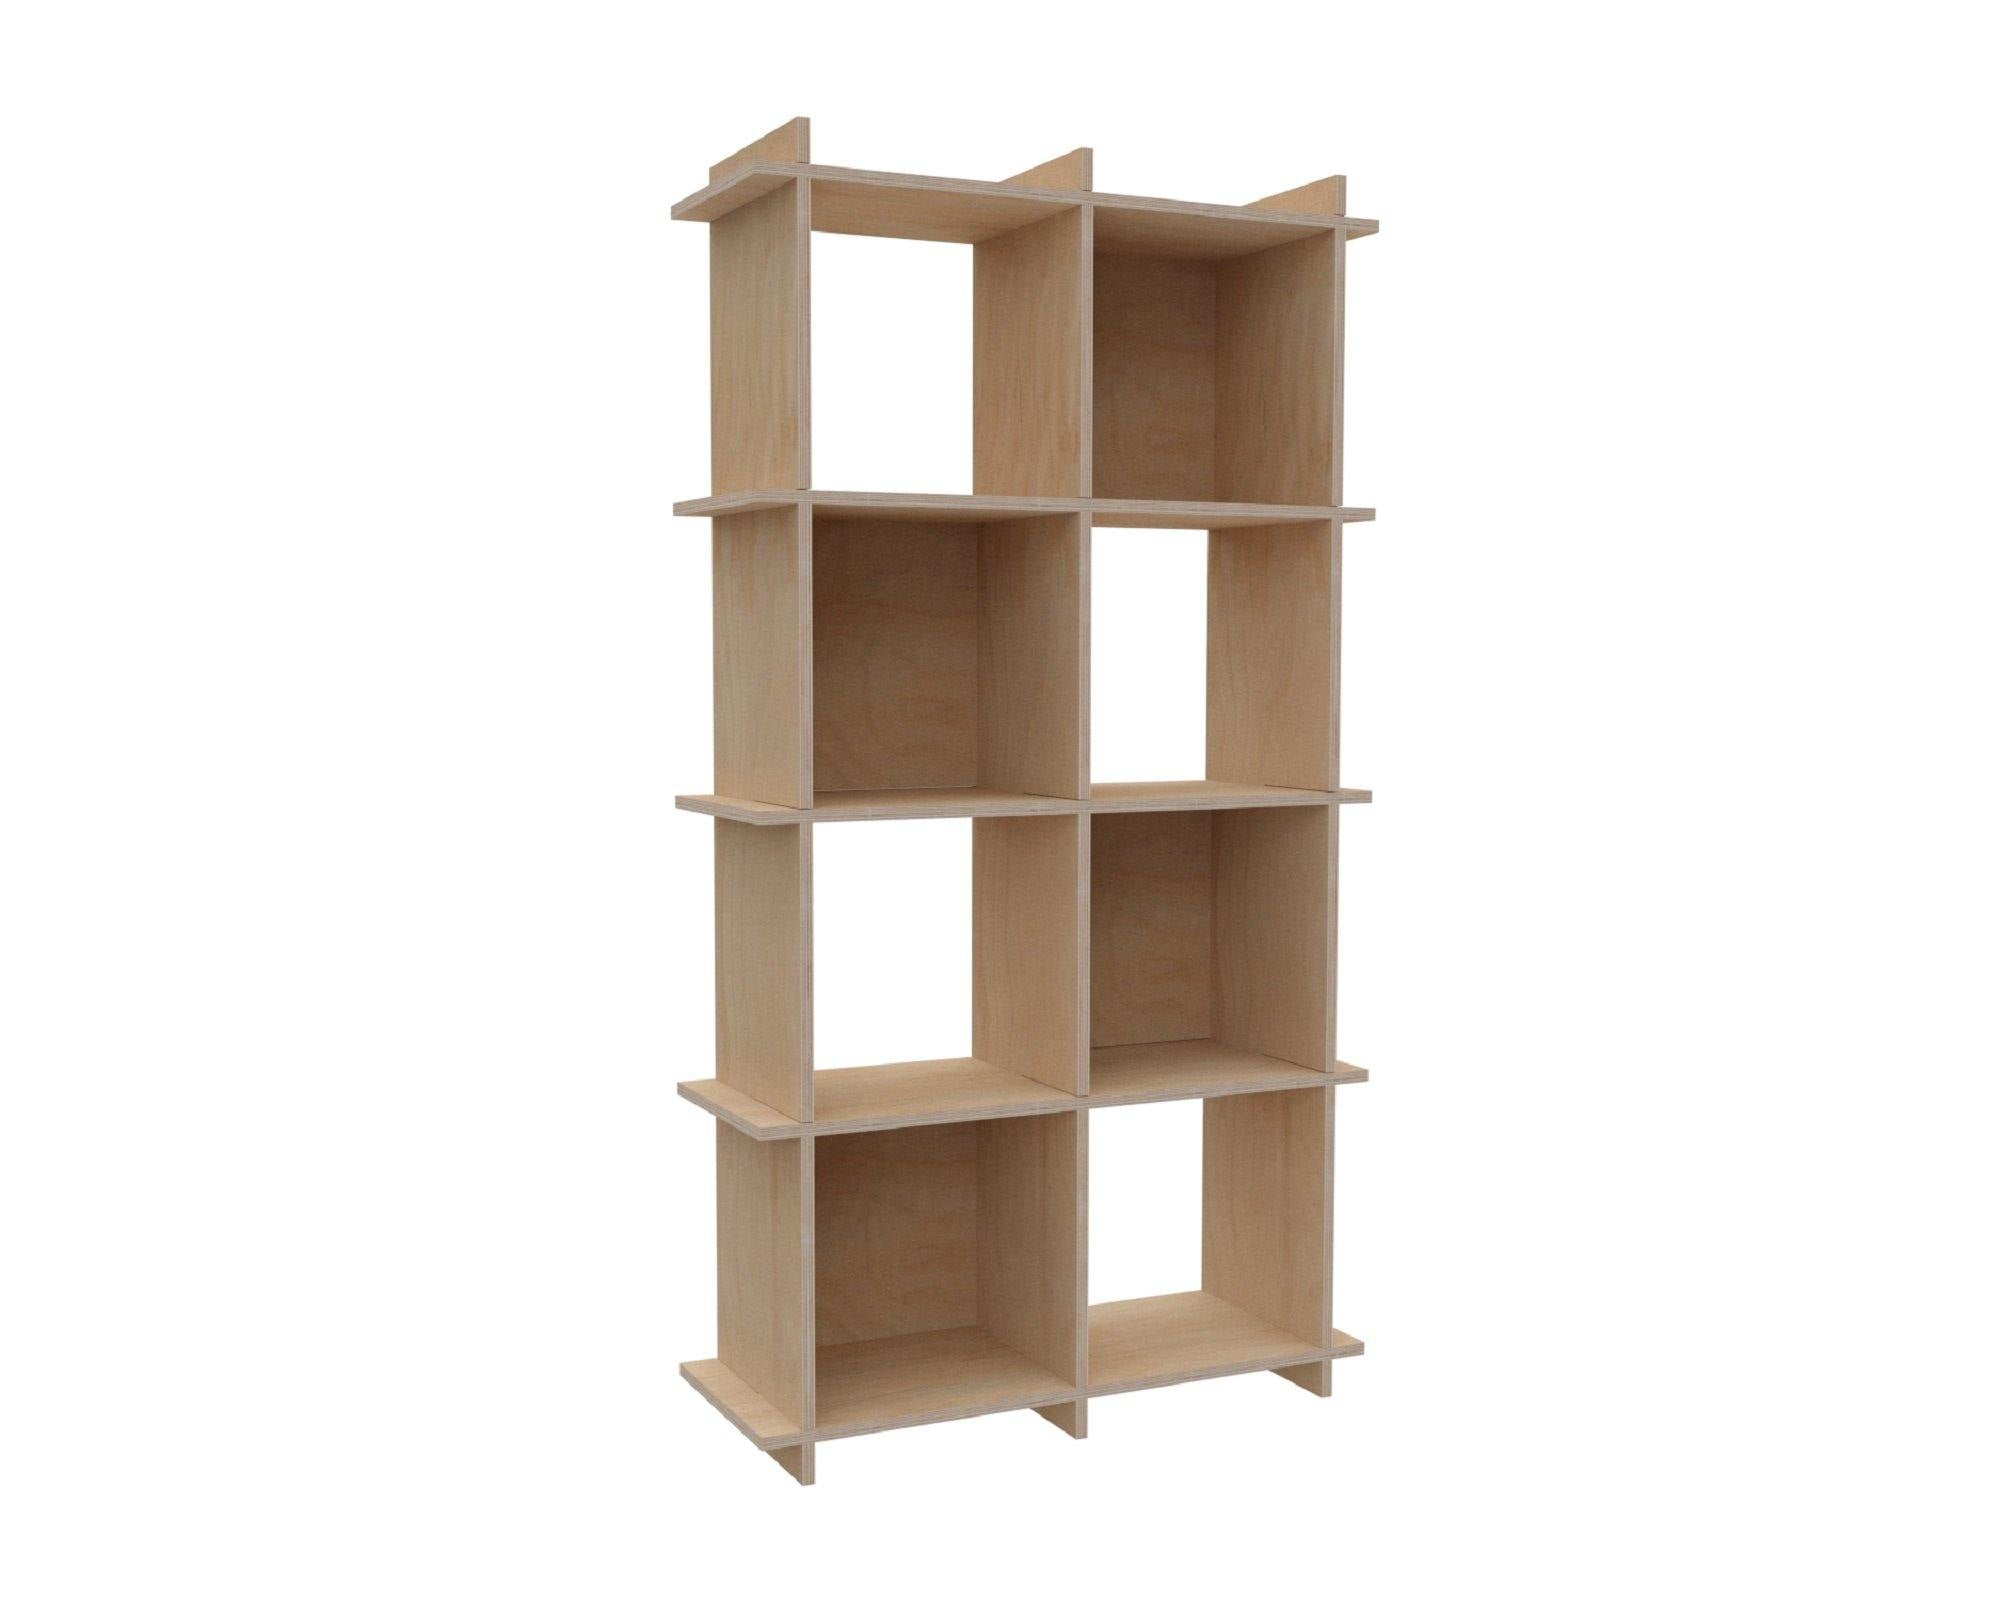 Custom Size Wooden Bookshelf - Plywood Bookcase,  2x4 (8 modules) - 80,5x149,5x33cm - skleia - custom size plywood furniture - handmade ergonomic ecologic plywood furniture